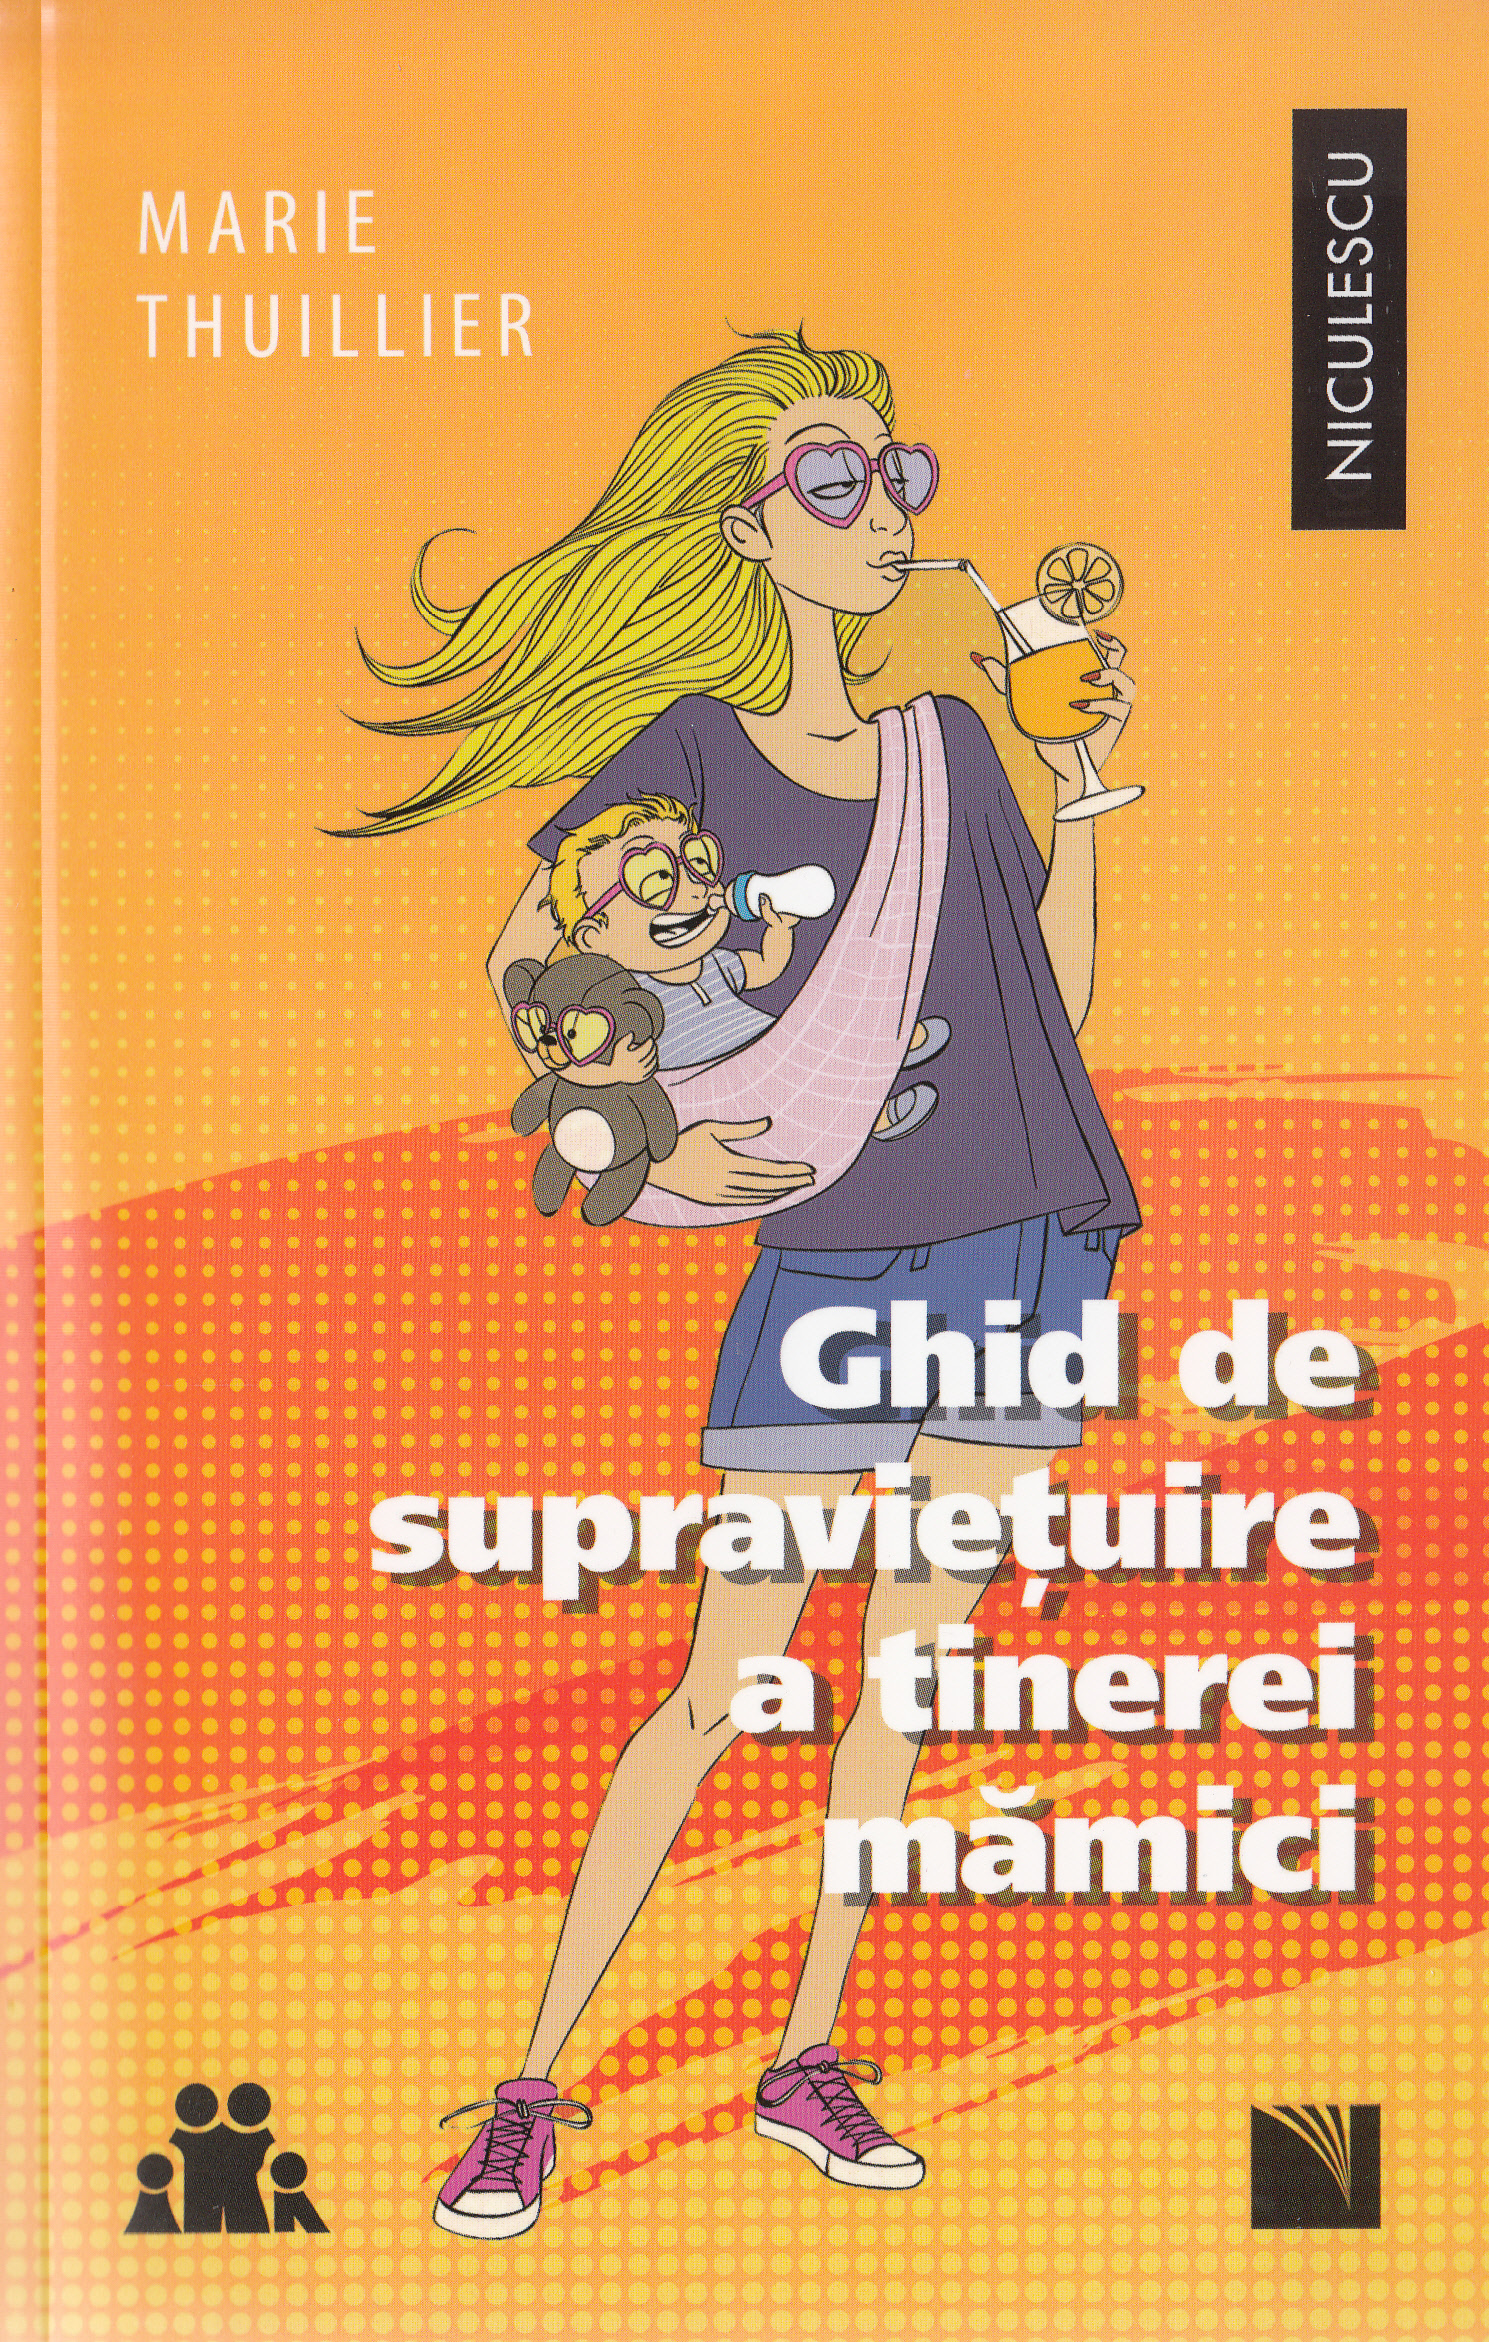 Ghid de supravietuire a tinerei mamici - Marie Thuillier thumbnail